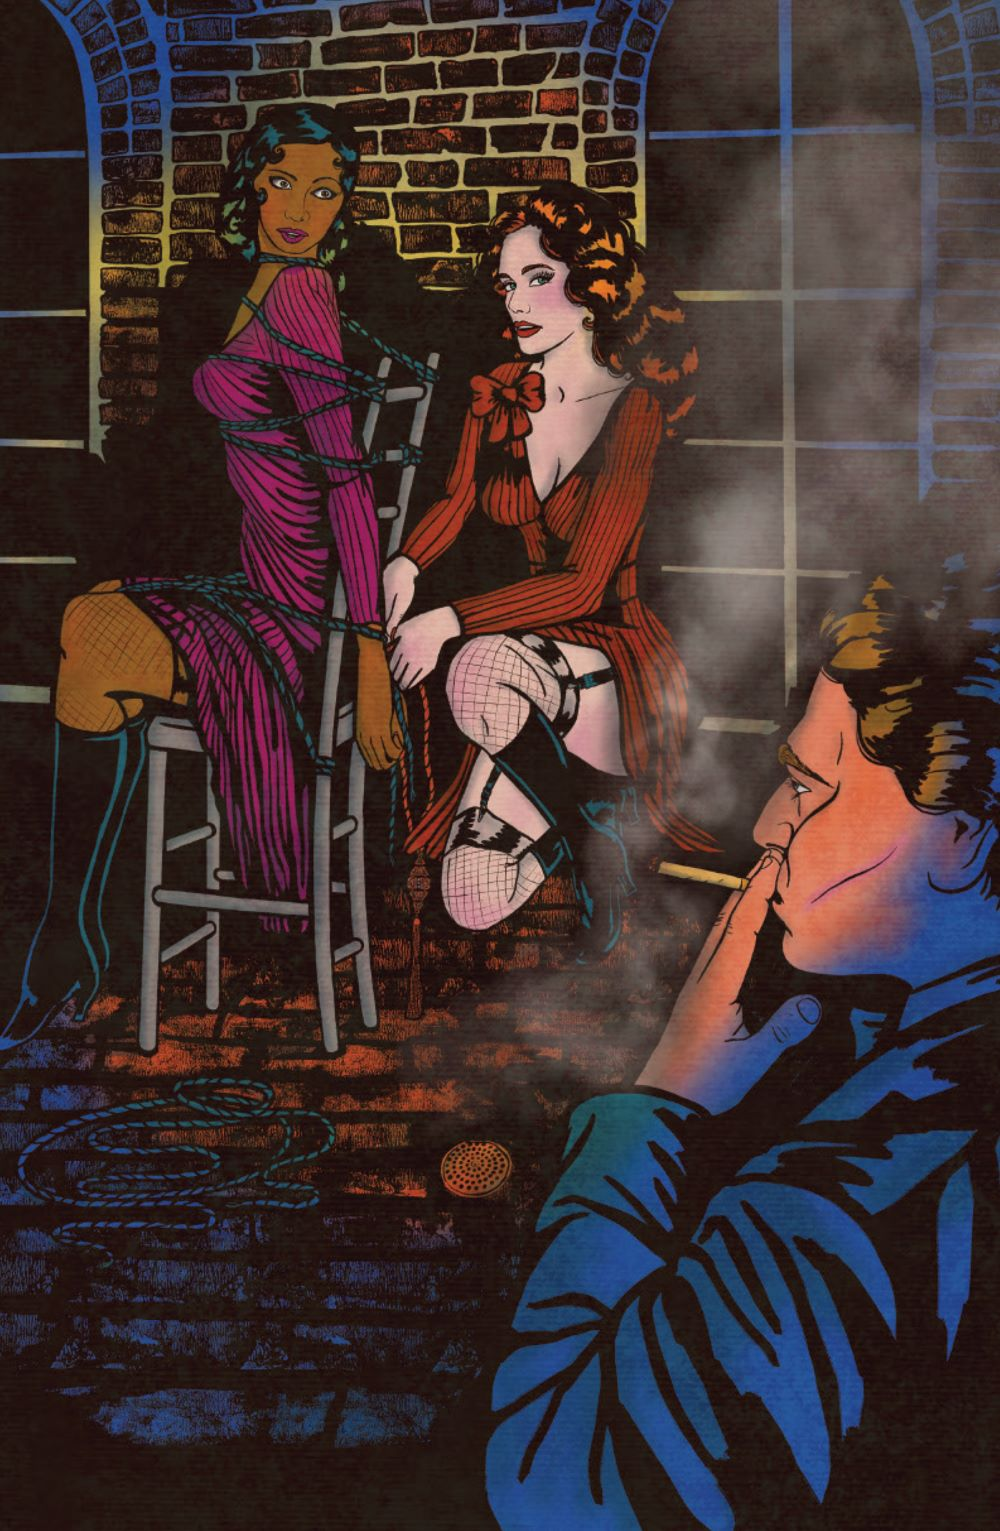 Pages-from-Binder3_Page_5 ComicList Previews: MINKY WOODCOCK THE GIRL WHO ELECTRIFIED TESLA #3